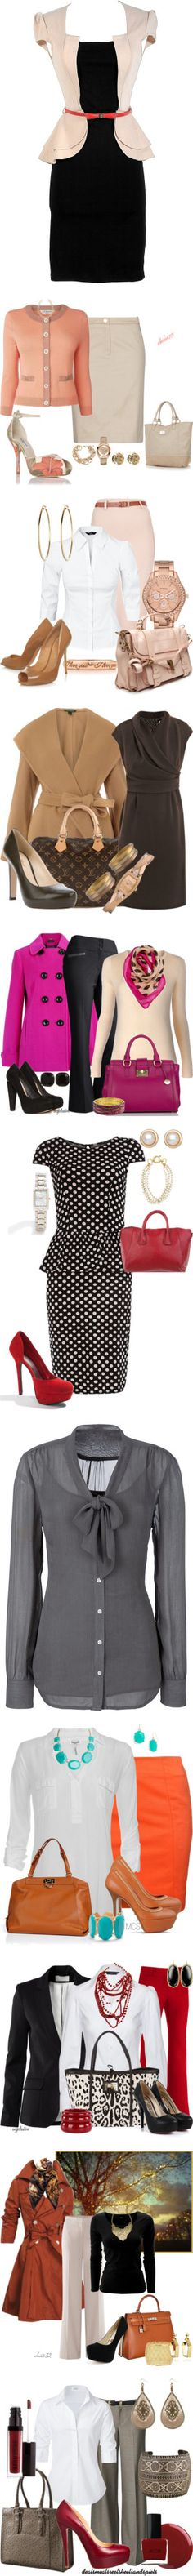 """work wear 1"" by pinkice ❤ liked on Polyvore"